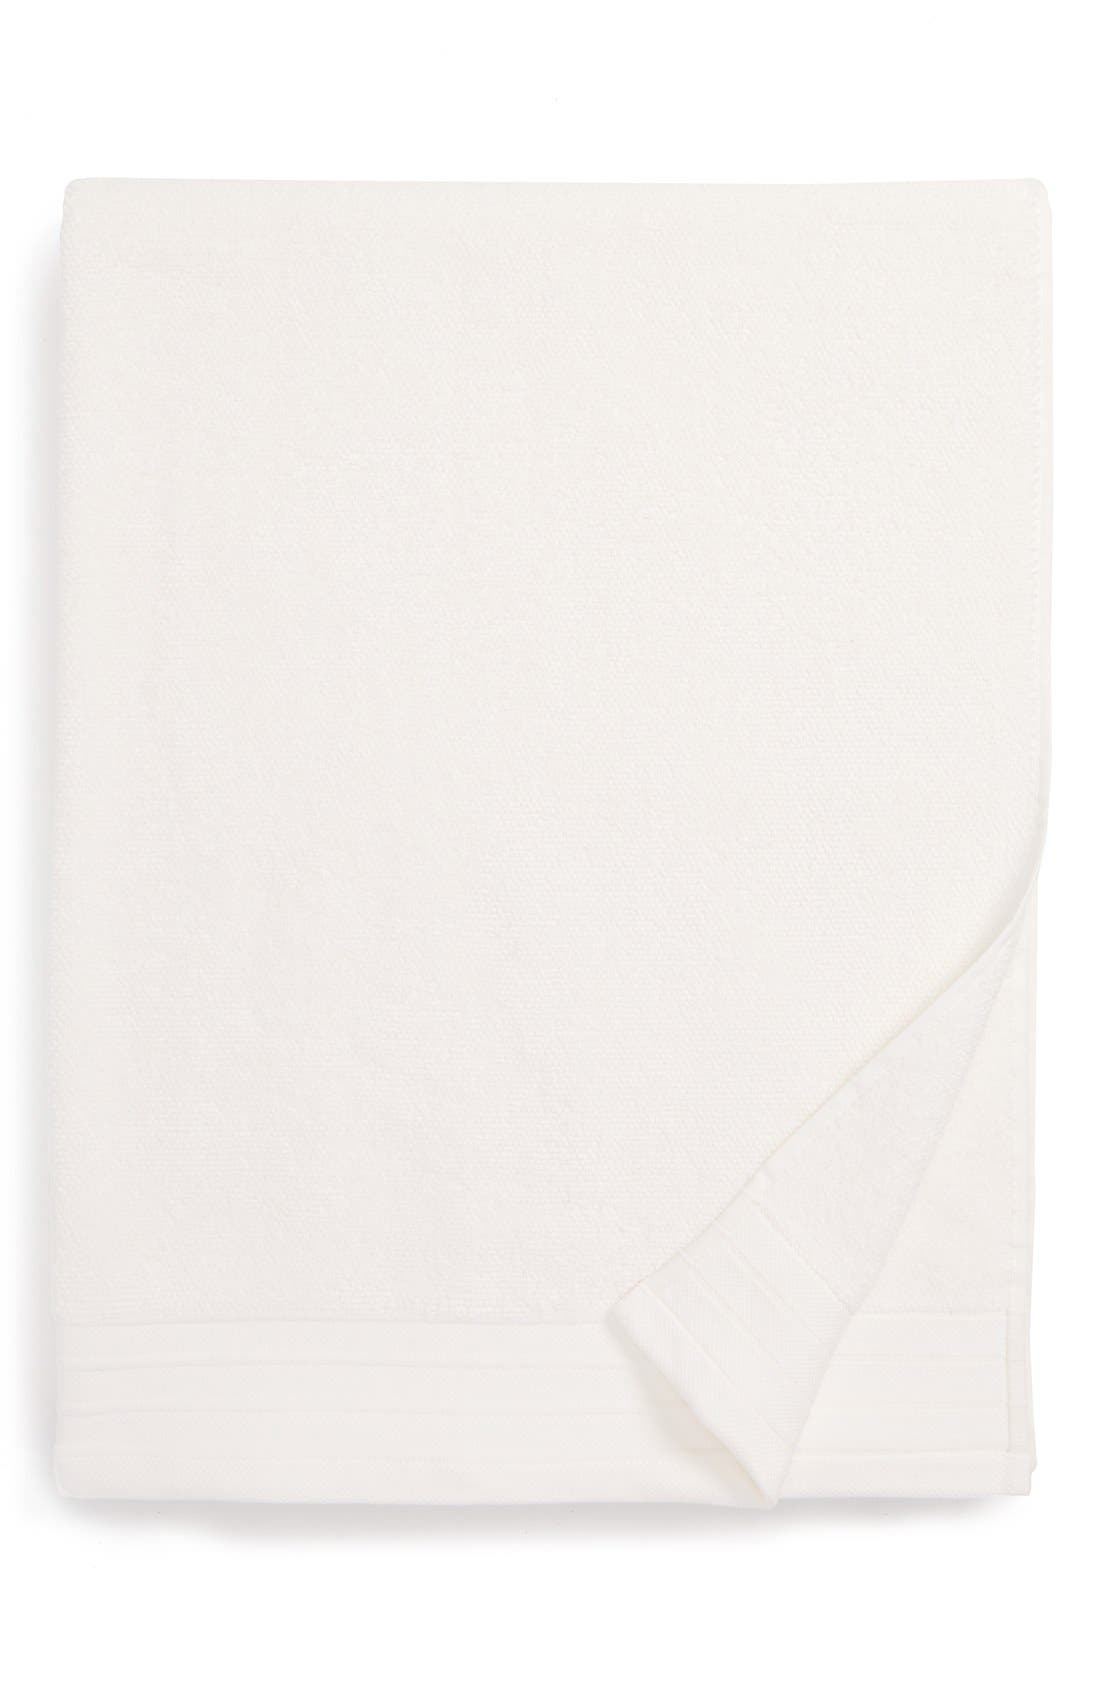 UGG® Classic Luxe Cotton Bath Sheet